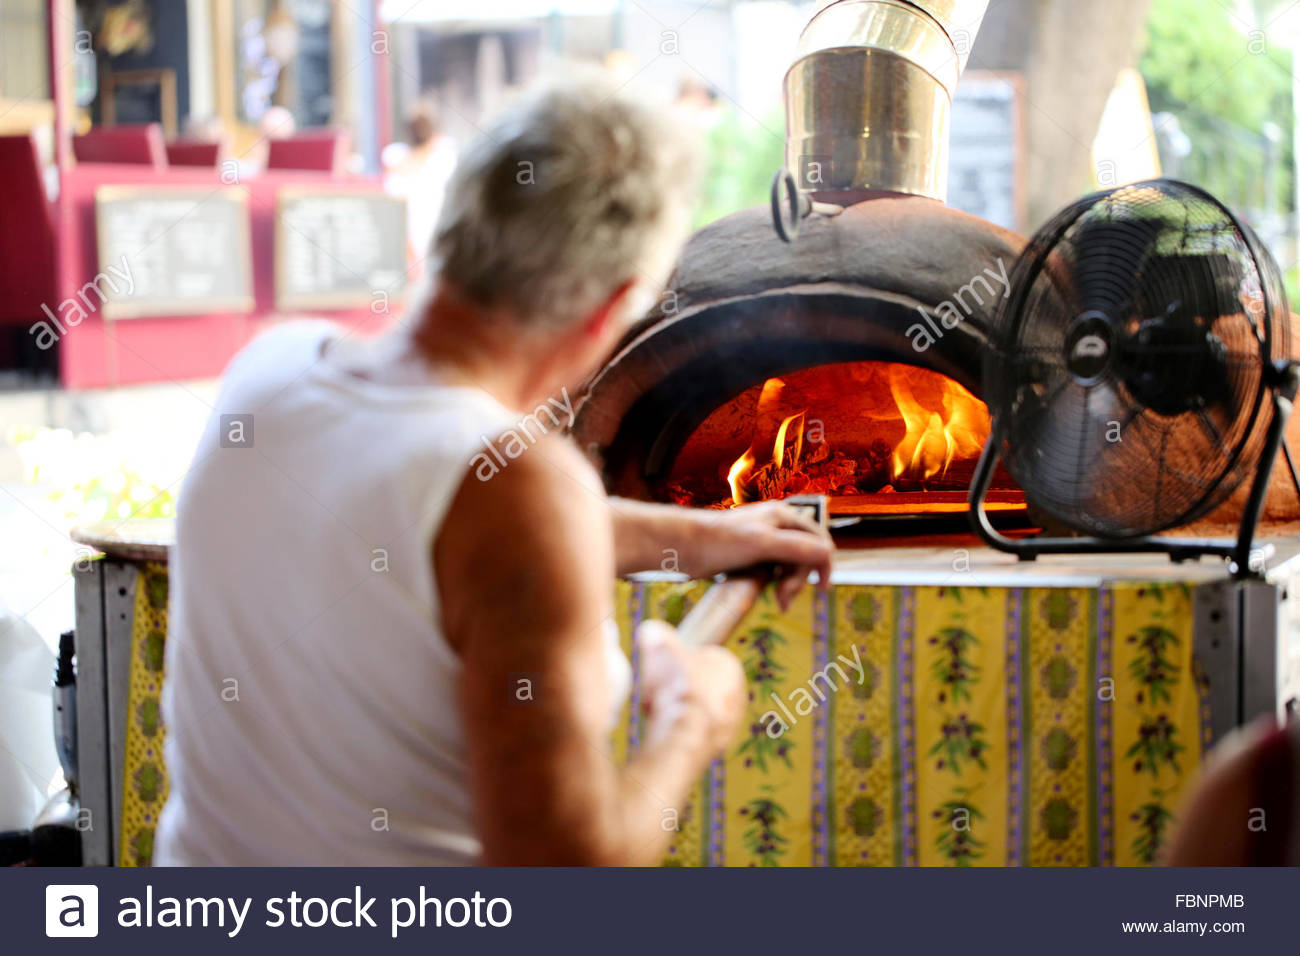 An older man, wearing a vest, pushes a spatula into an open, flaming, cast iron pizza oven in a covered market area - Stock Image